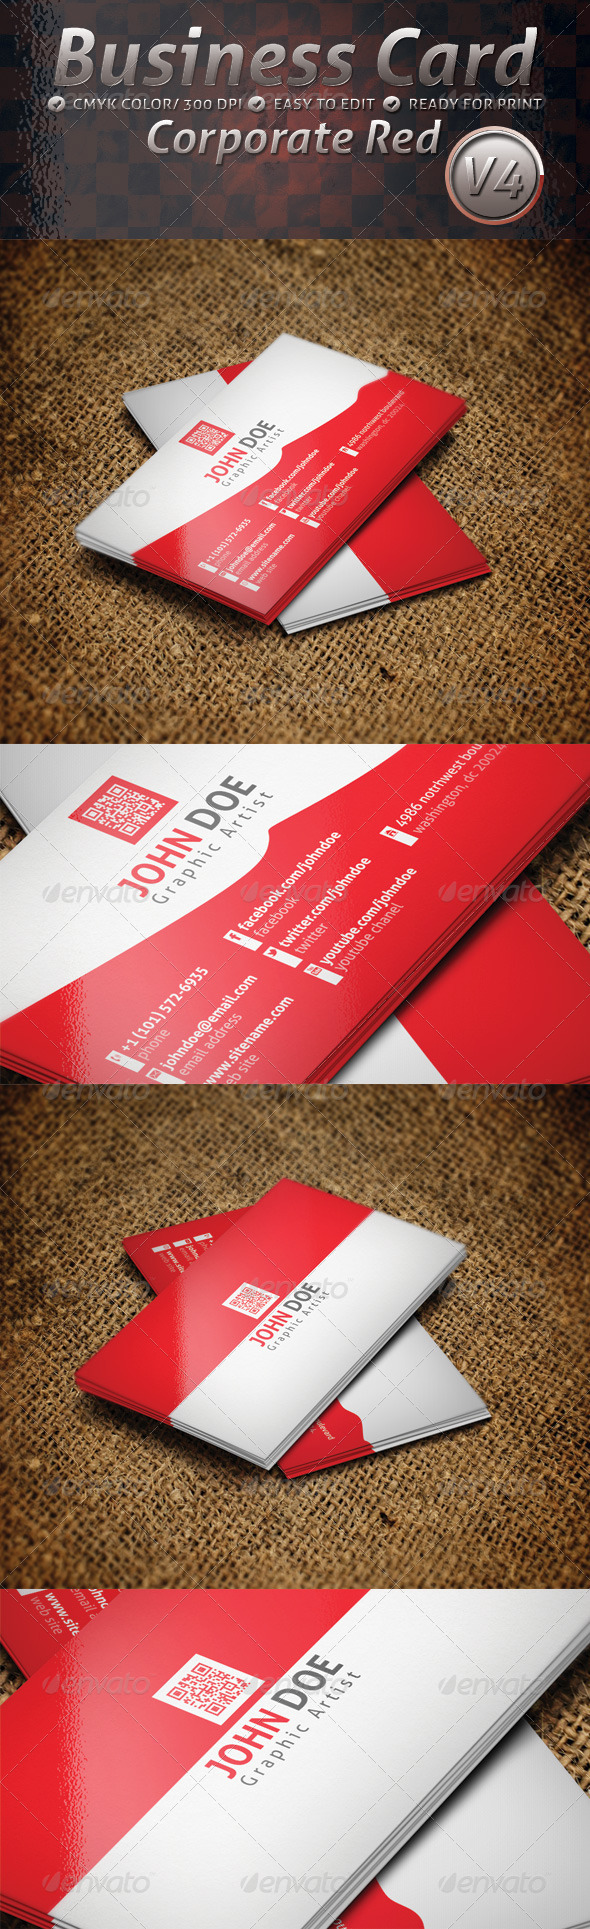 GraphicRiver Business Card Corporate V4 4811672